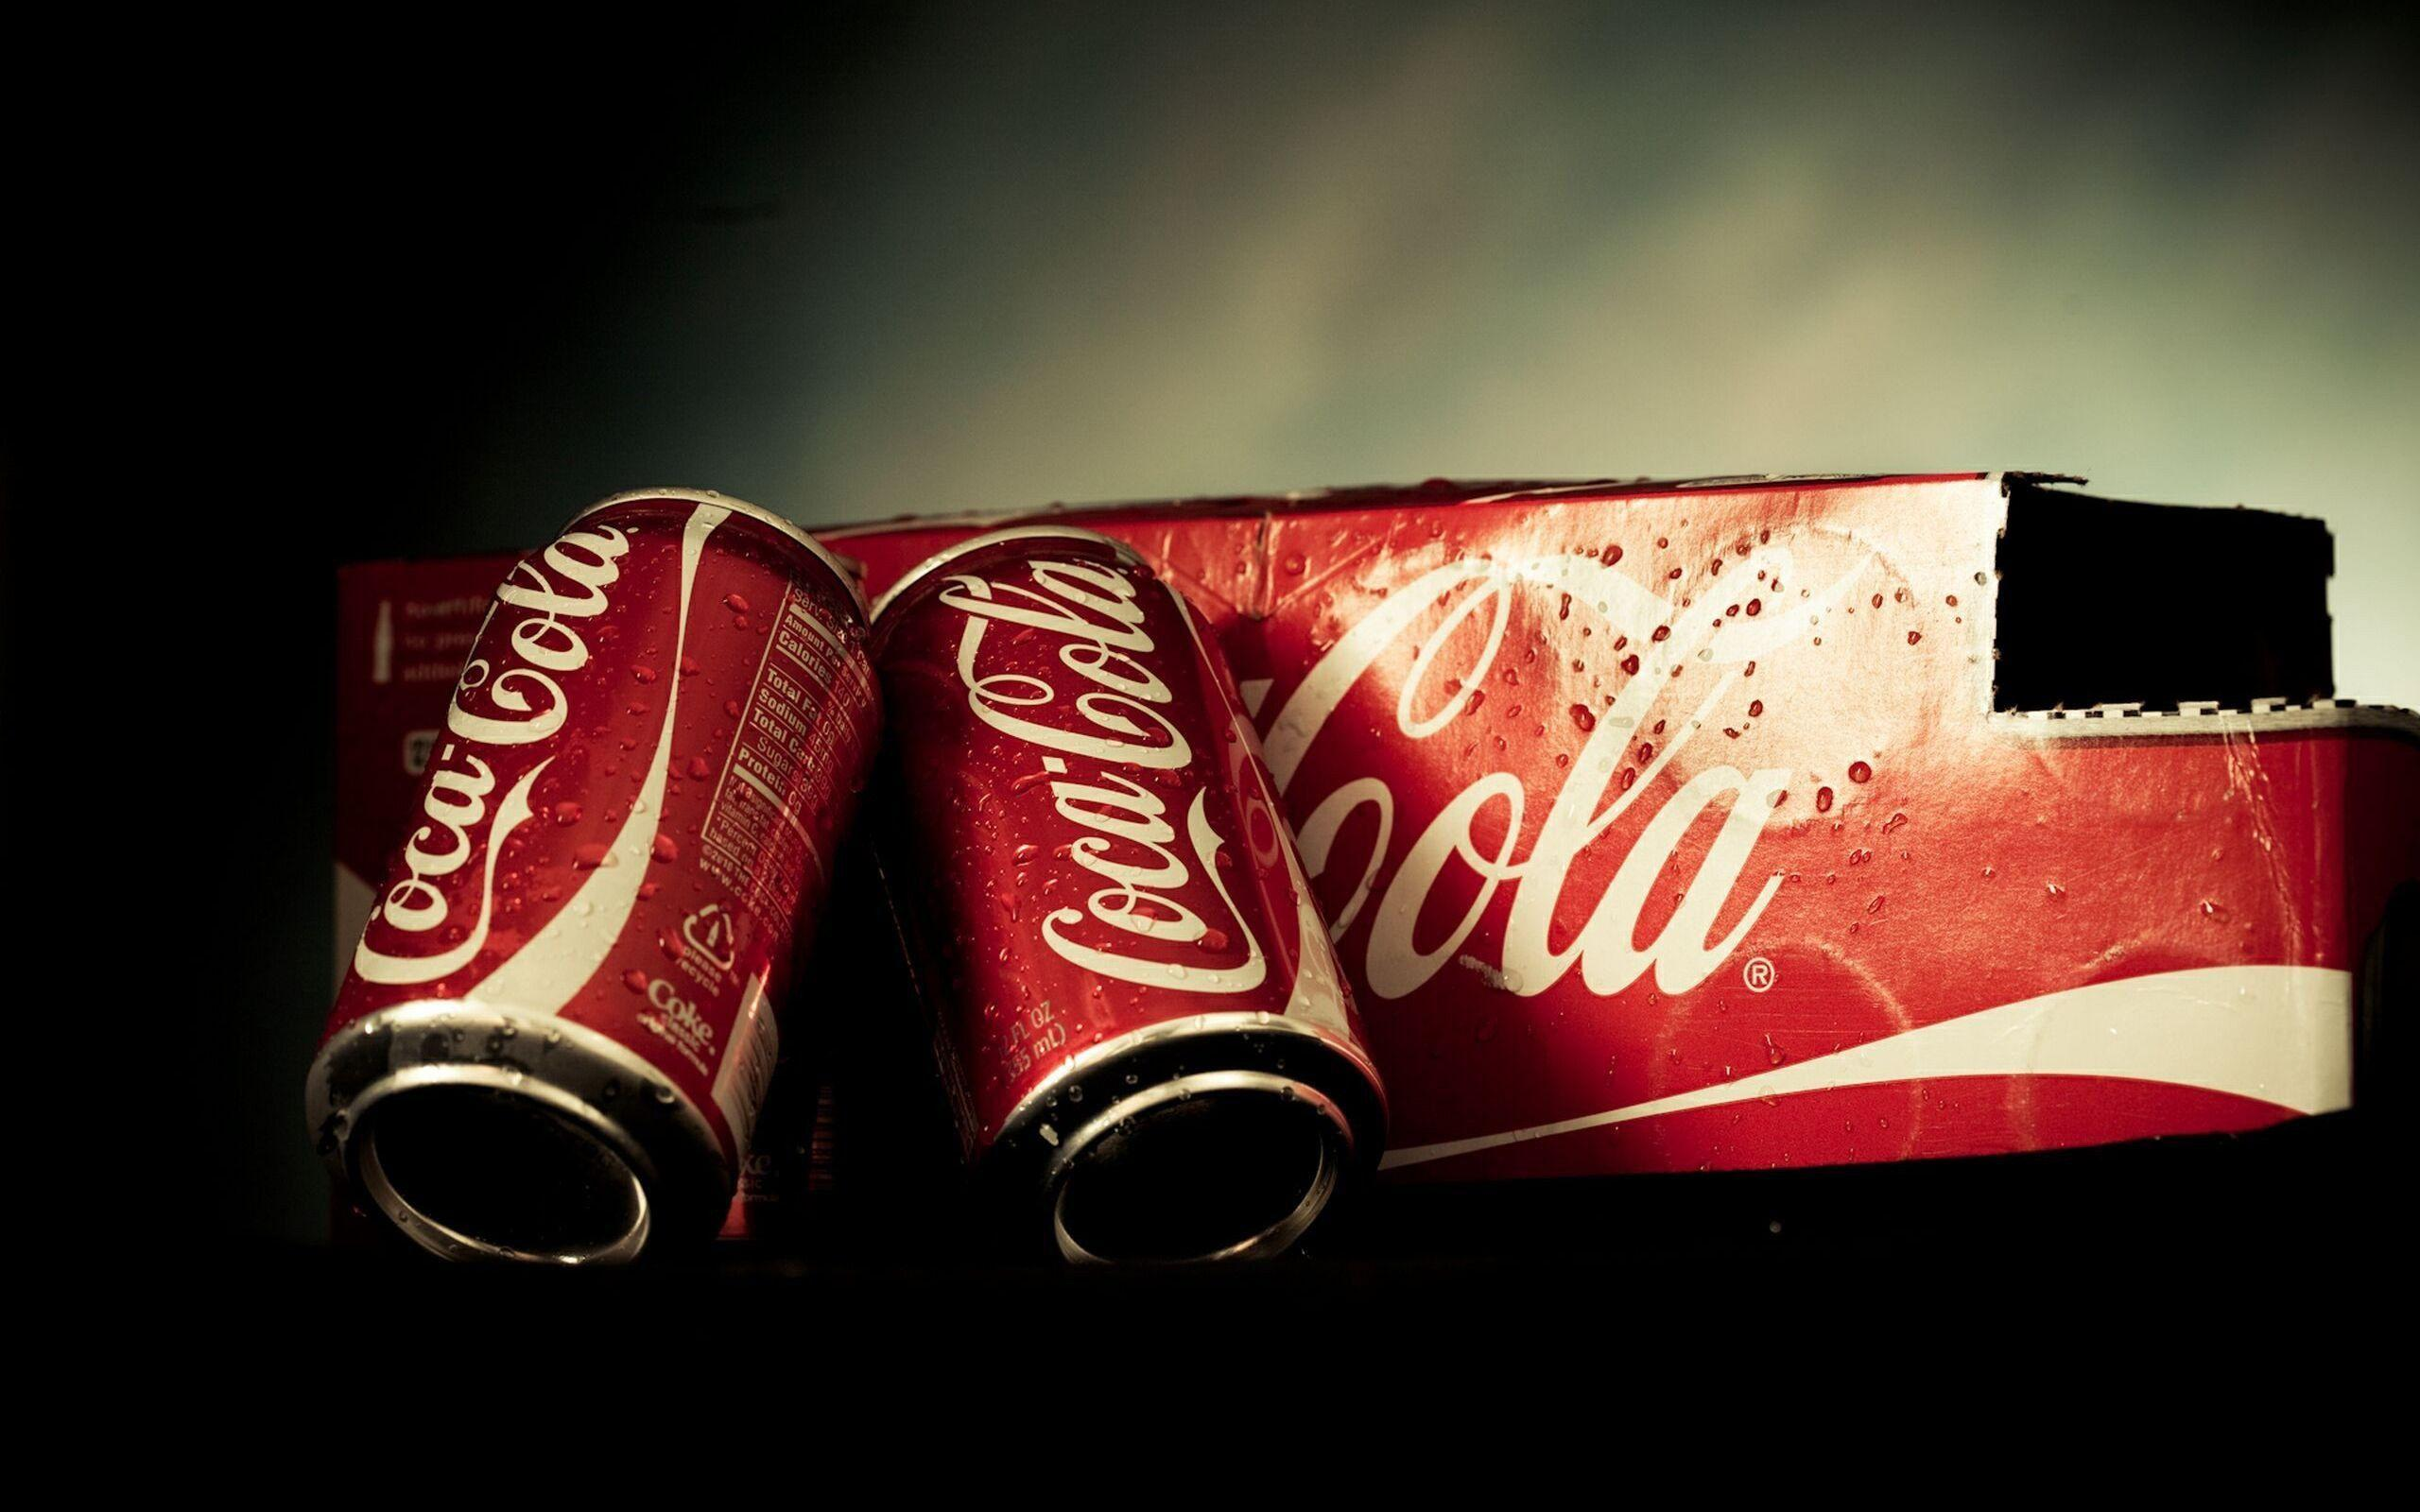 88 Coca Cola Wallpapers | Coca Cola Backgrounds